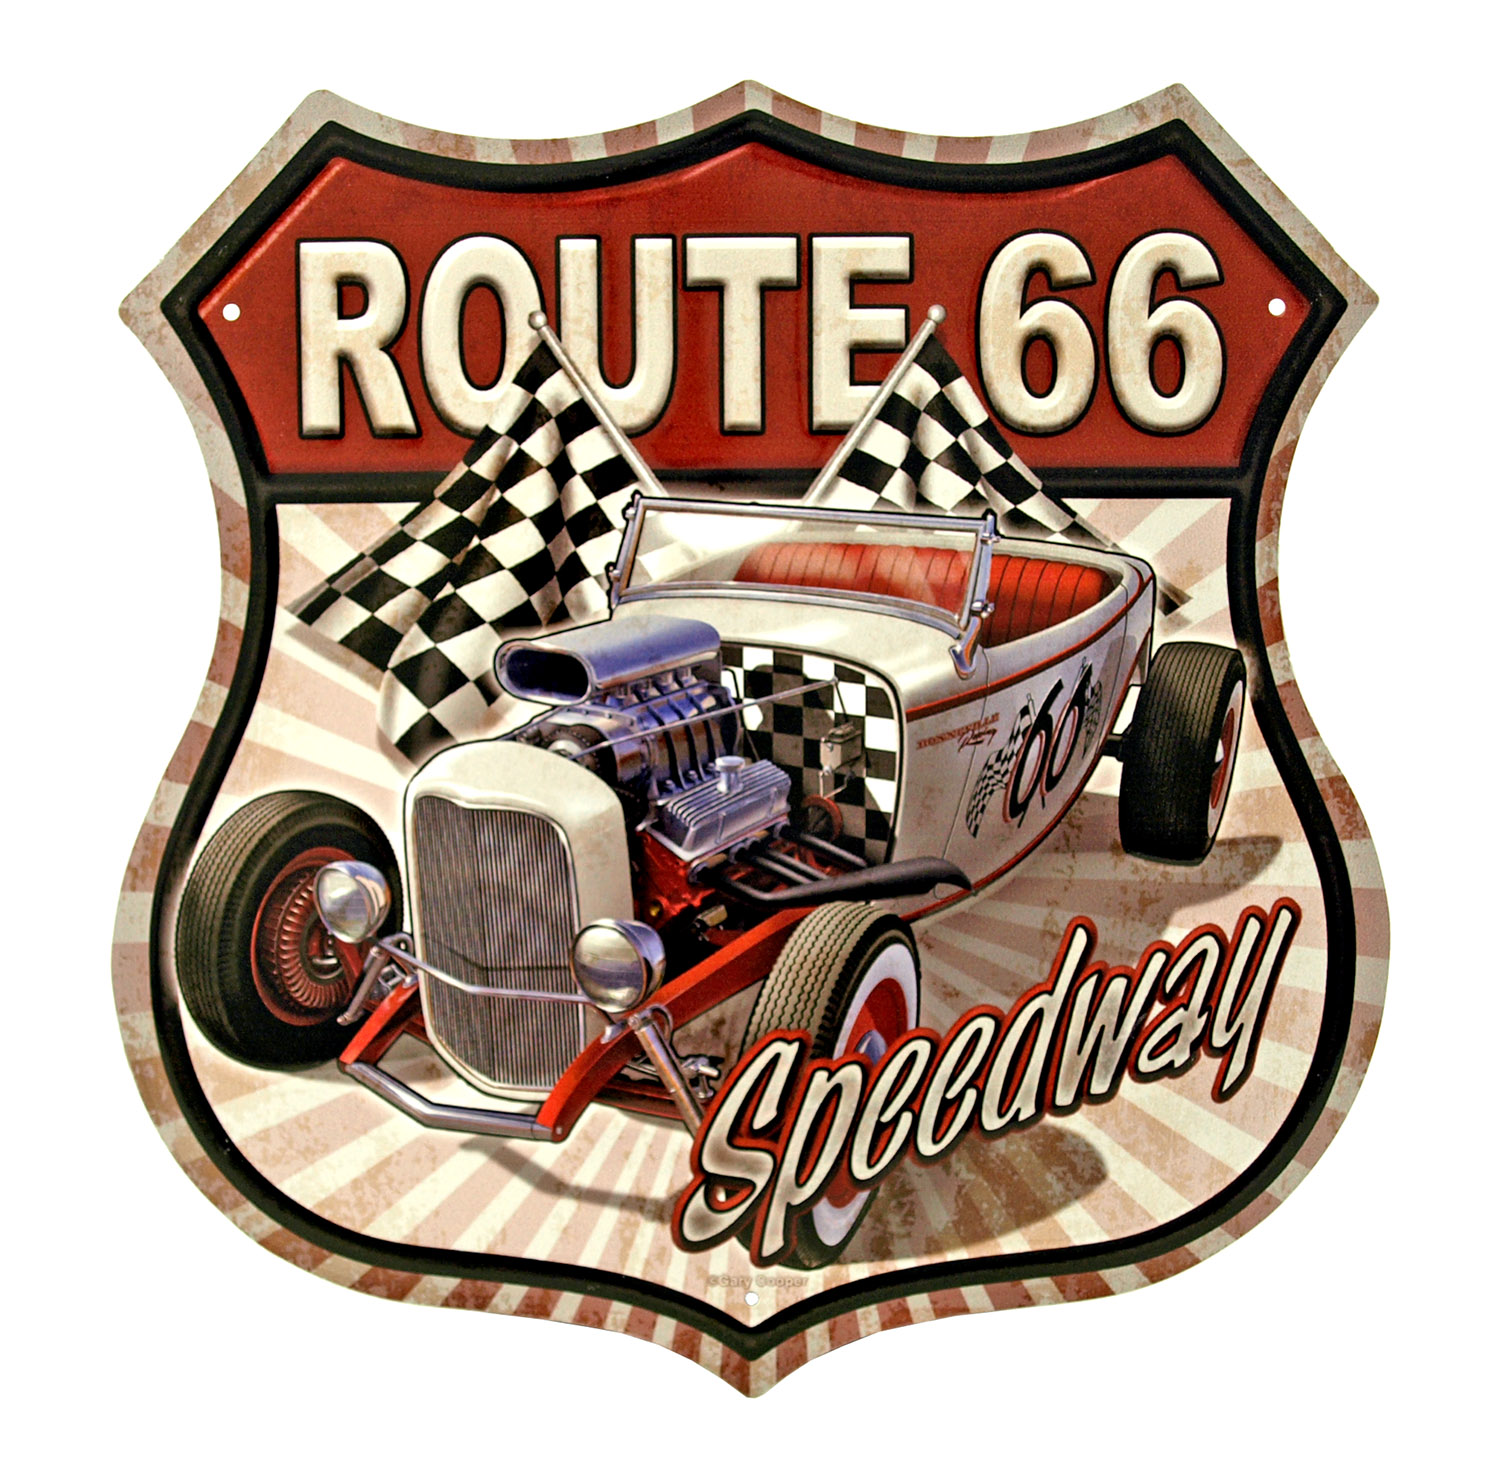 Route 66 Speedway Roadster Highway Shield Metal Tin Sign